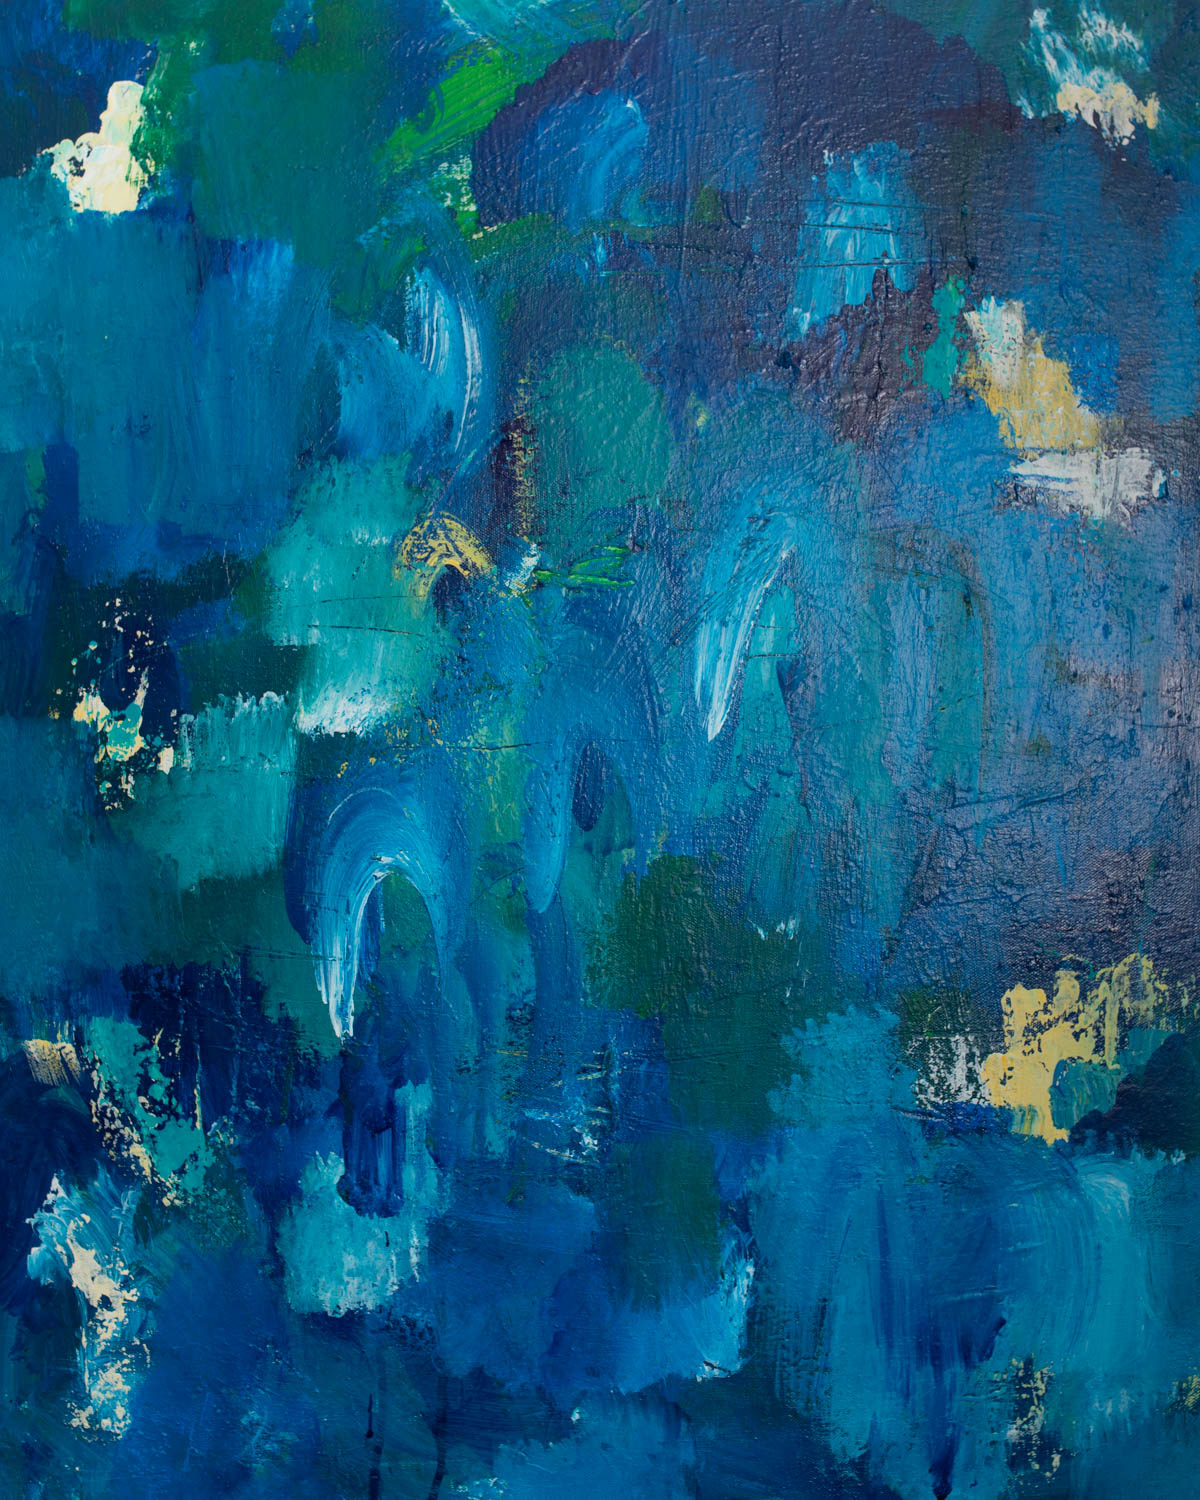 DIVING DEEP 2  60 X 76 X 3CM ACRYLIC ON CANVAS  $400   CLICK HERE FOR ENQUIRY